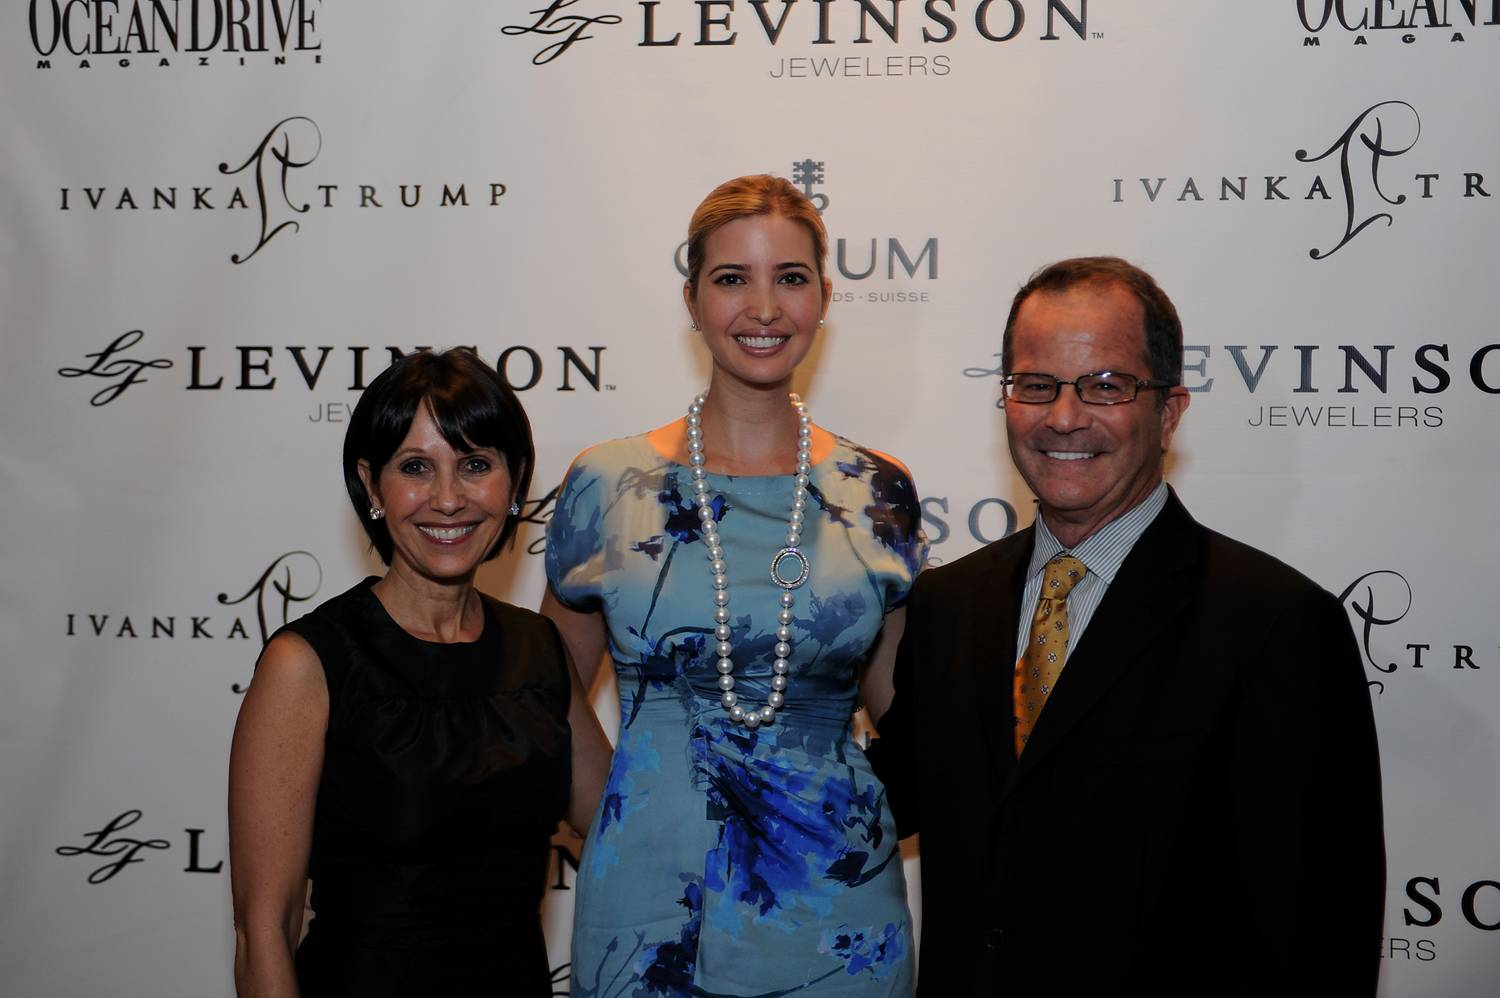 P1 -- Robin Levinson, Ivanka Trump and Mark Levinson